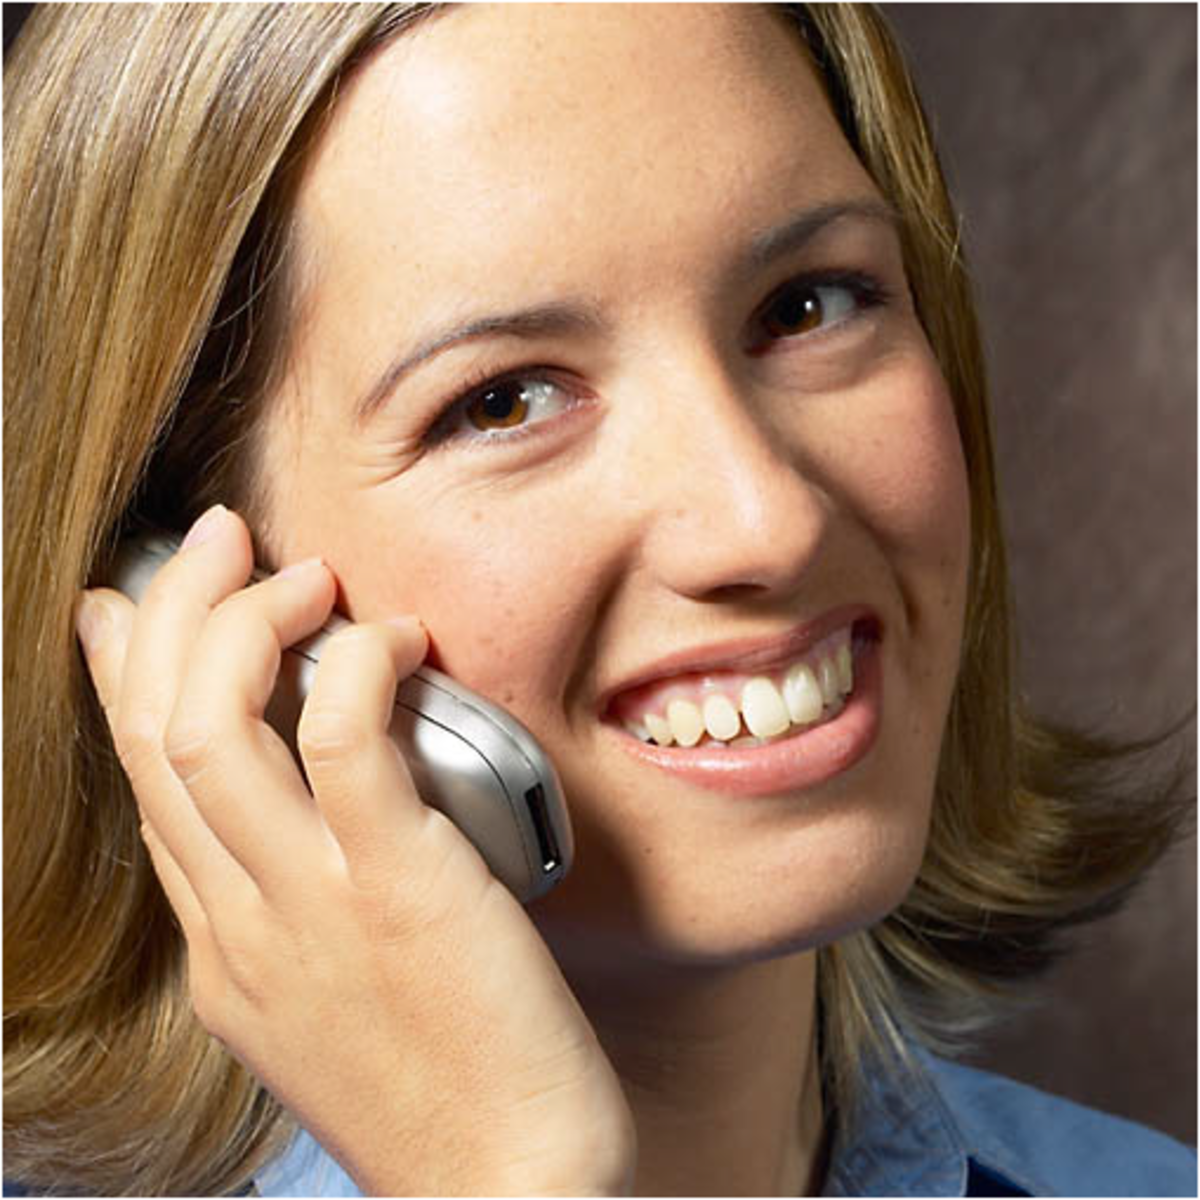 You can apply for a free cell phone and free monthly minutes at SafeLink.com or call 1-800-SAFELINK No tax dollars are paid for the phones and the program is funded by the telecommunications companies.